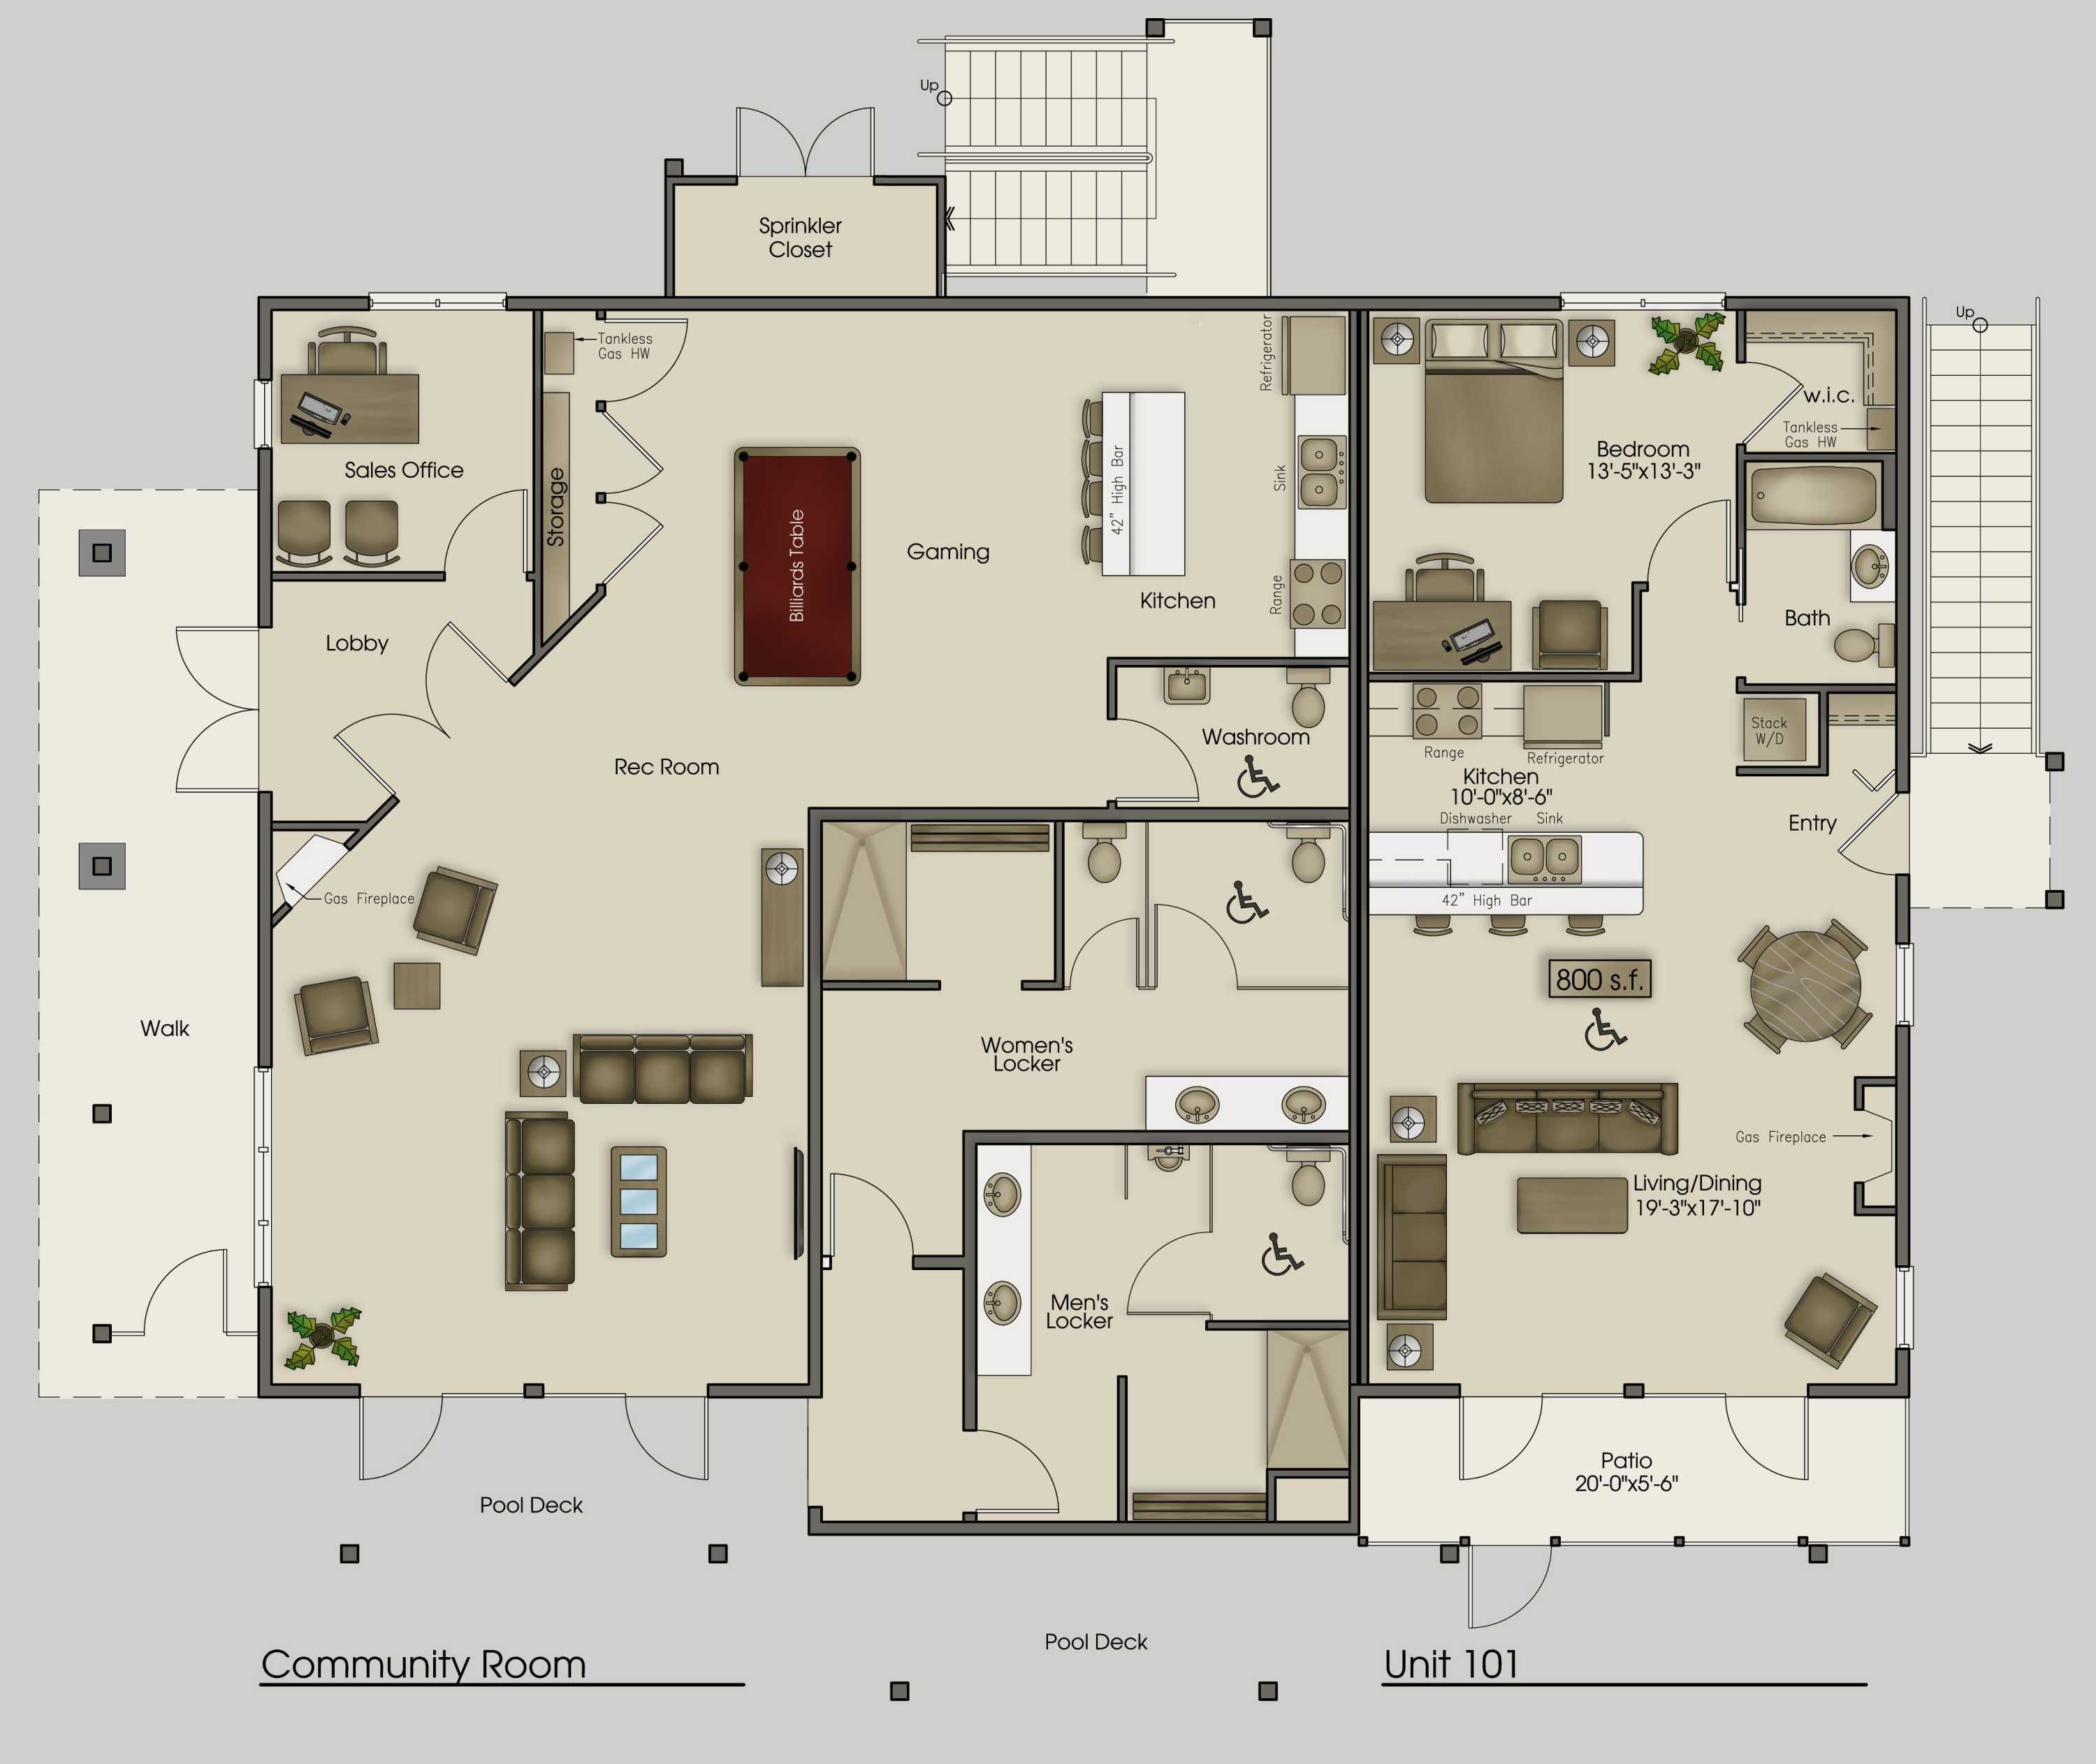 mega villa plans clubhouse plan pictures apartments sample ...